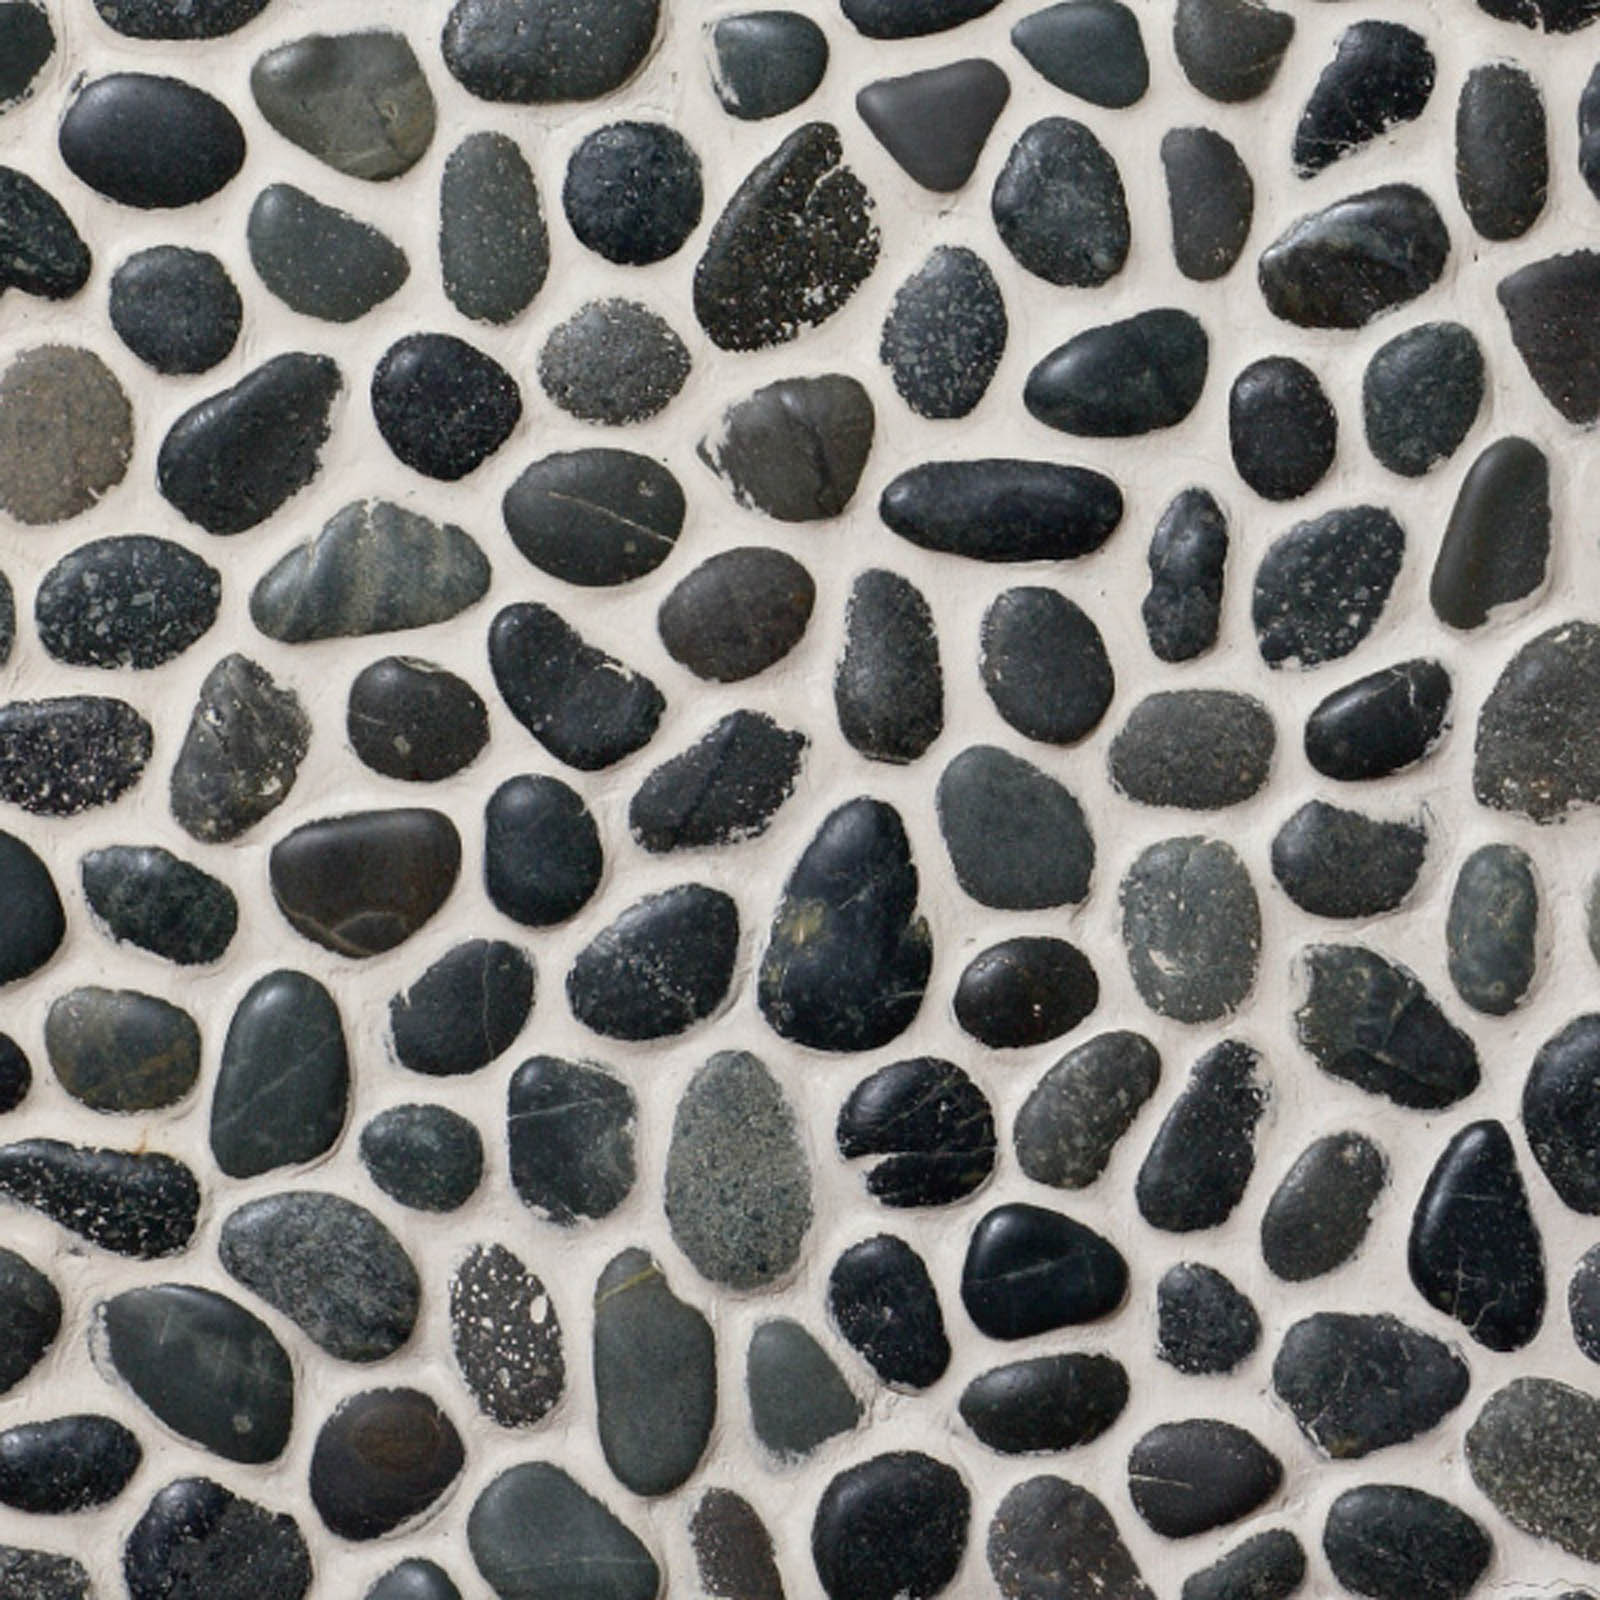 Qualitystone Pebble Swarthy Black Small Interlock verkolla 300x300 mm